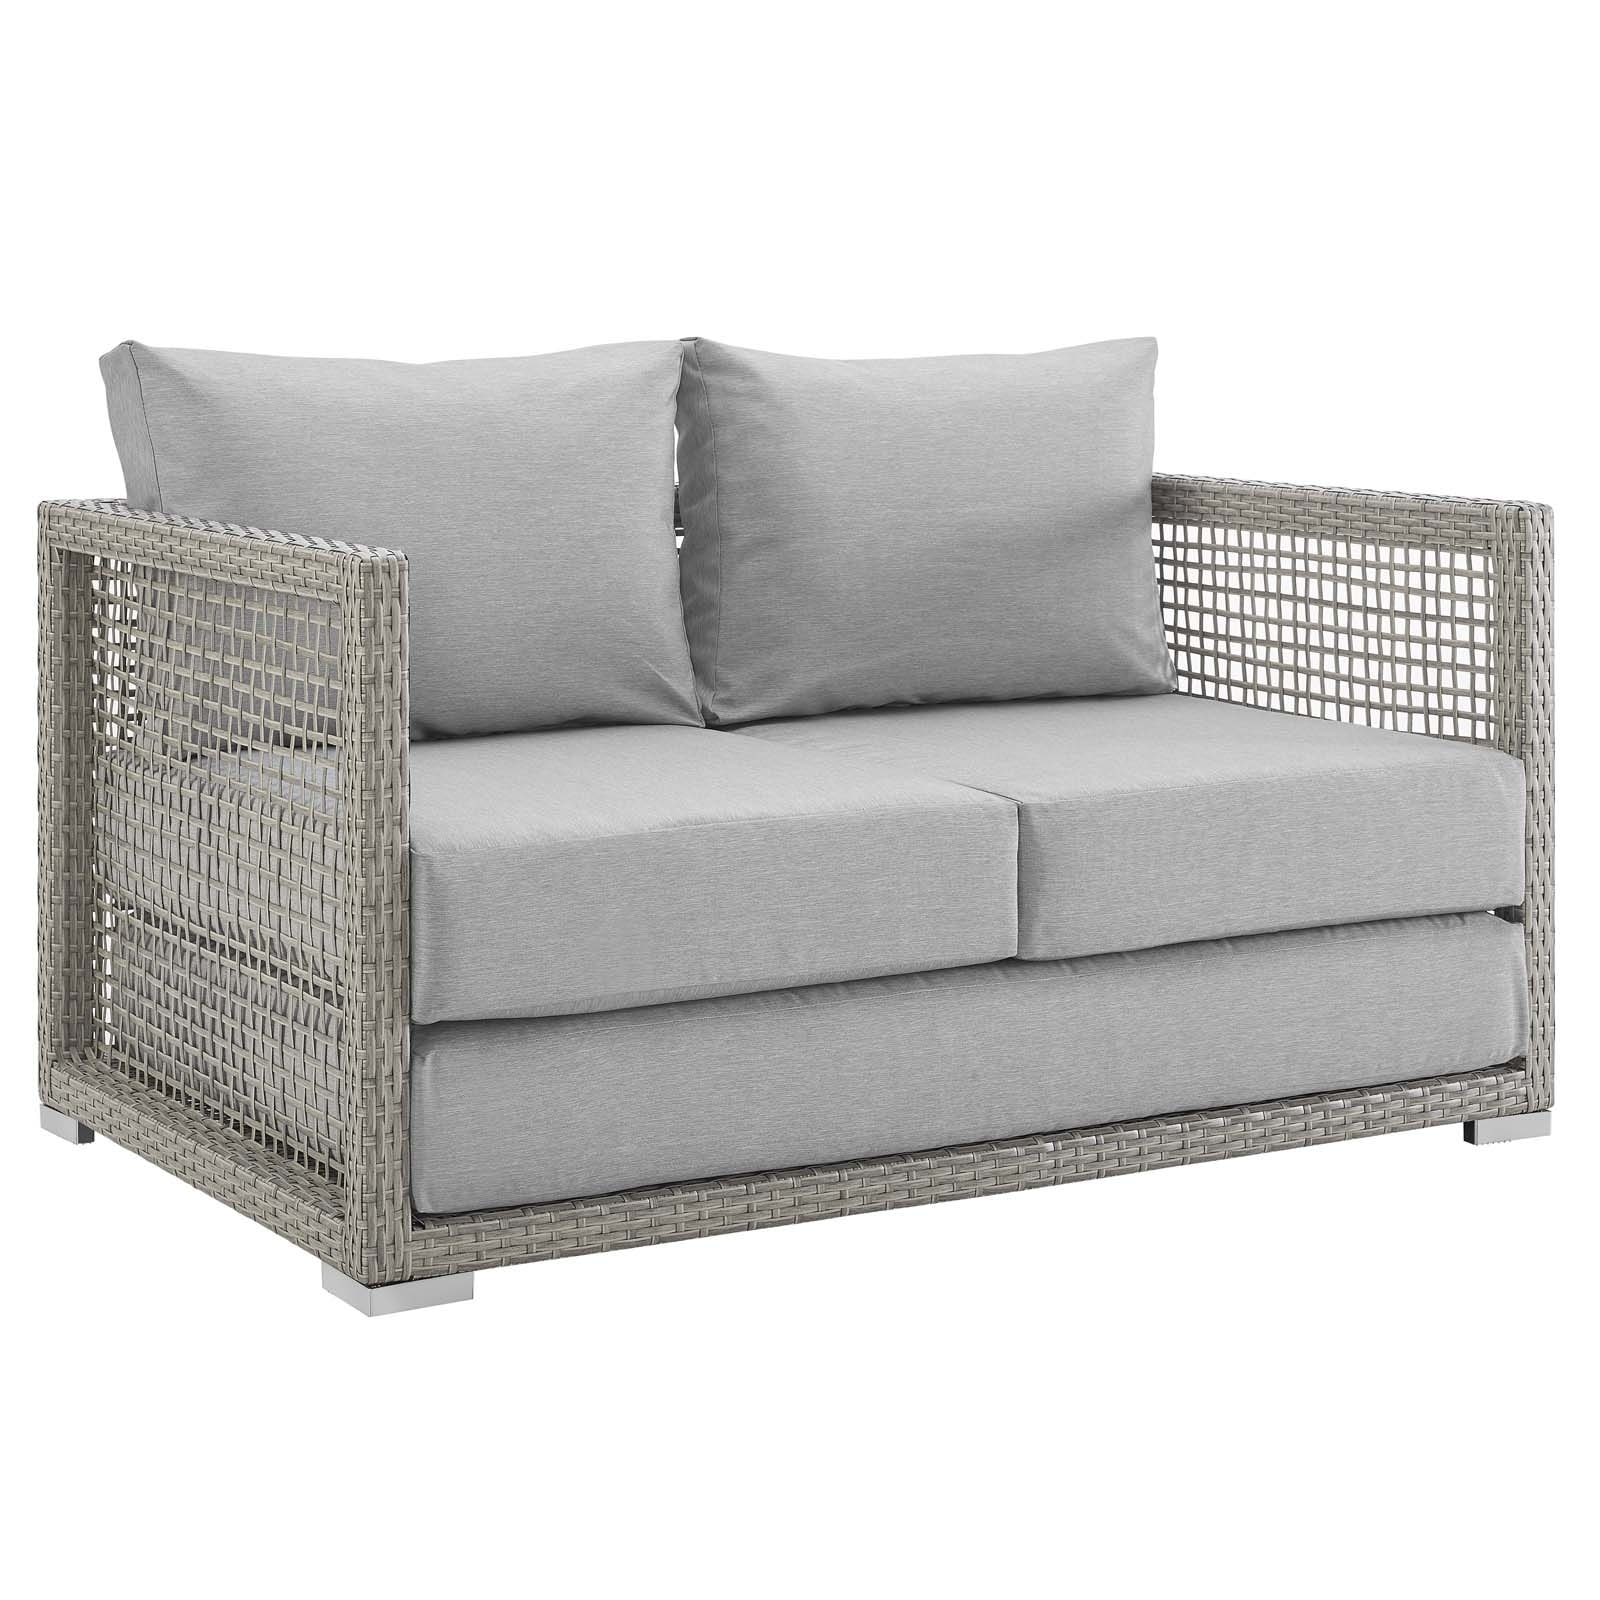 outdoor patio sea cushion tortuga zm loveseat pines lex wicker